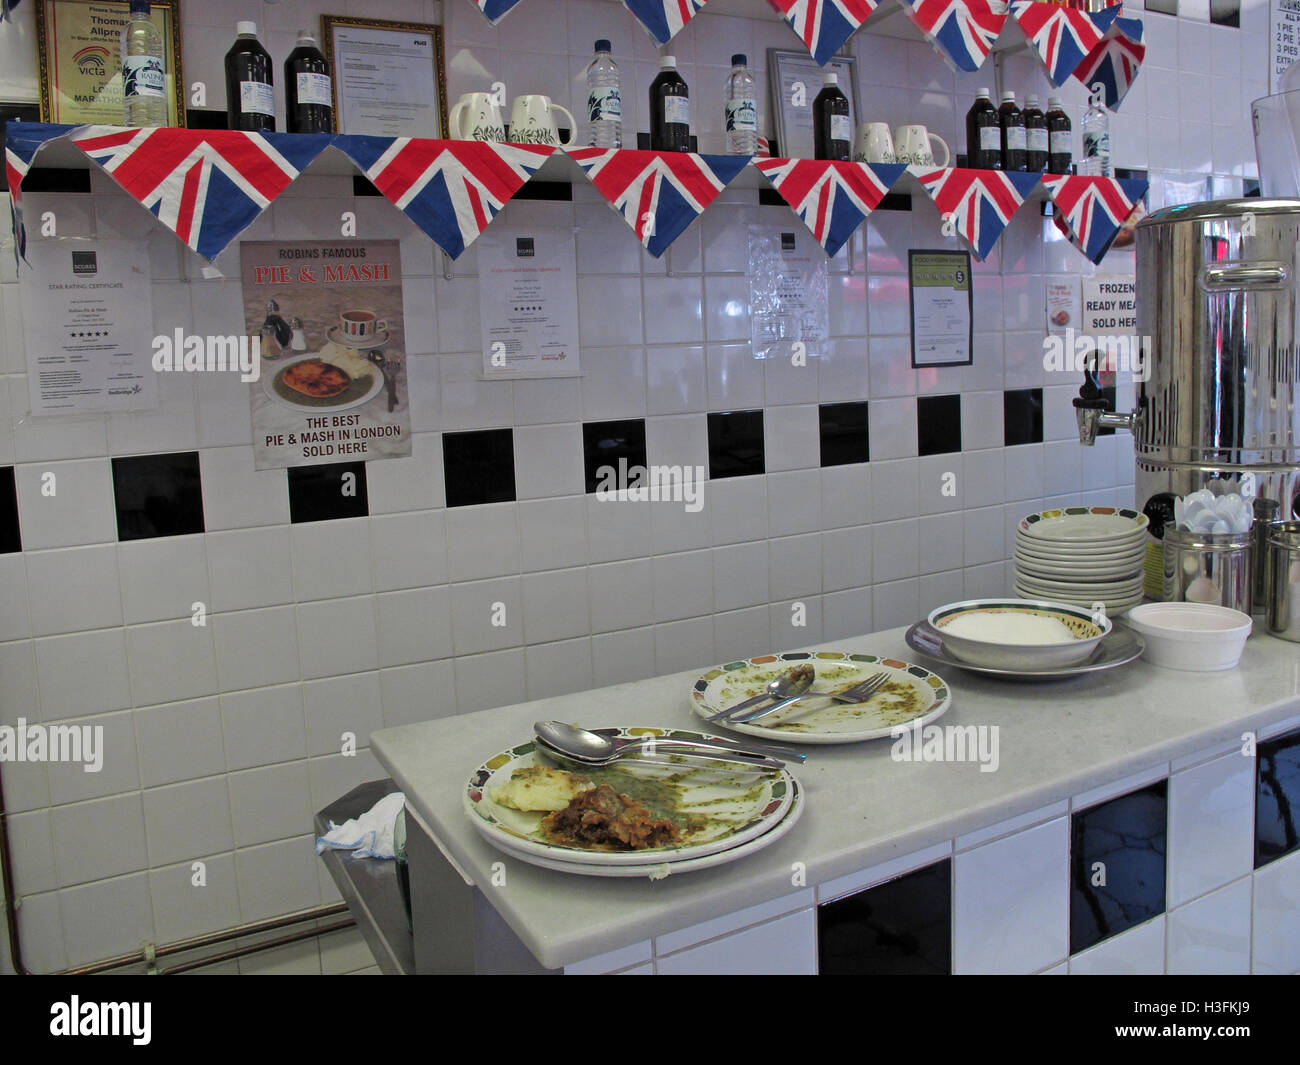 Inside Robins traditional Pie & Mash, Ilford Essex, Greater London, England, dirty plates - Stock Image